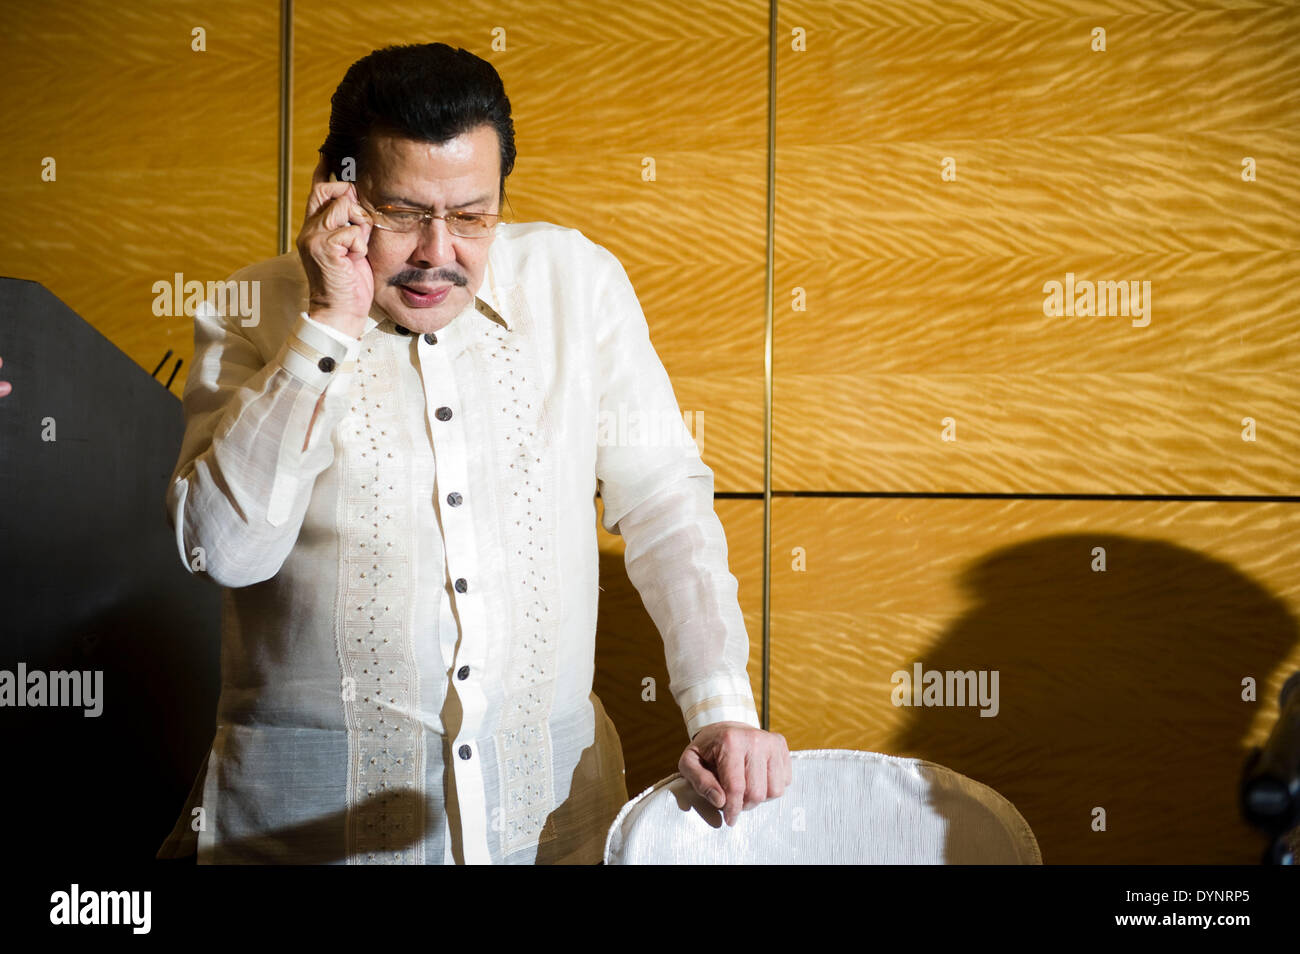 Hong Kong, China. 23rd Apr, 2014. Mayor of Manila Joseph Estrada attends a press conference in Hong Kong, south China, April 23, 2014. The Philippine government expressed its most sorrowful regret and profound sympathy, and extended its most sincere condolences for the pain and suffering of the victims and their families in the bus hostage crisis that happened in Manila in August 2010, according to a joint statement issued by the government of Hong Kong Special Administrative Region and the Philippine government here on Wednesday. © Lui Siu Wai/Xinhua/Alamy Live News - Stock Image